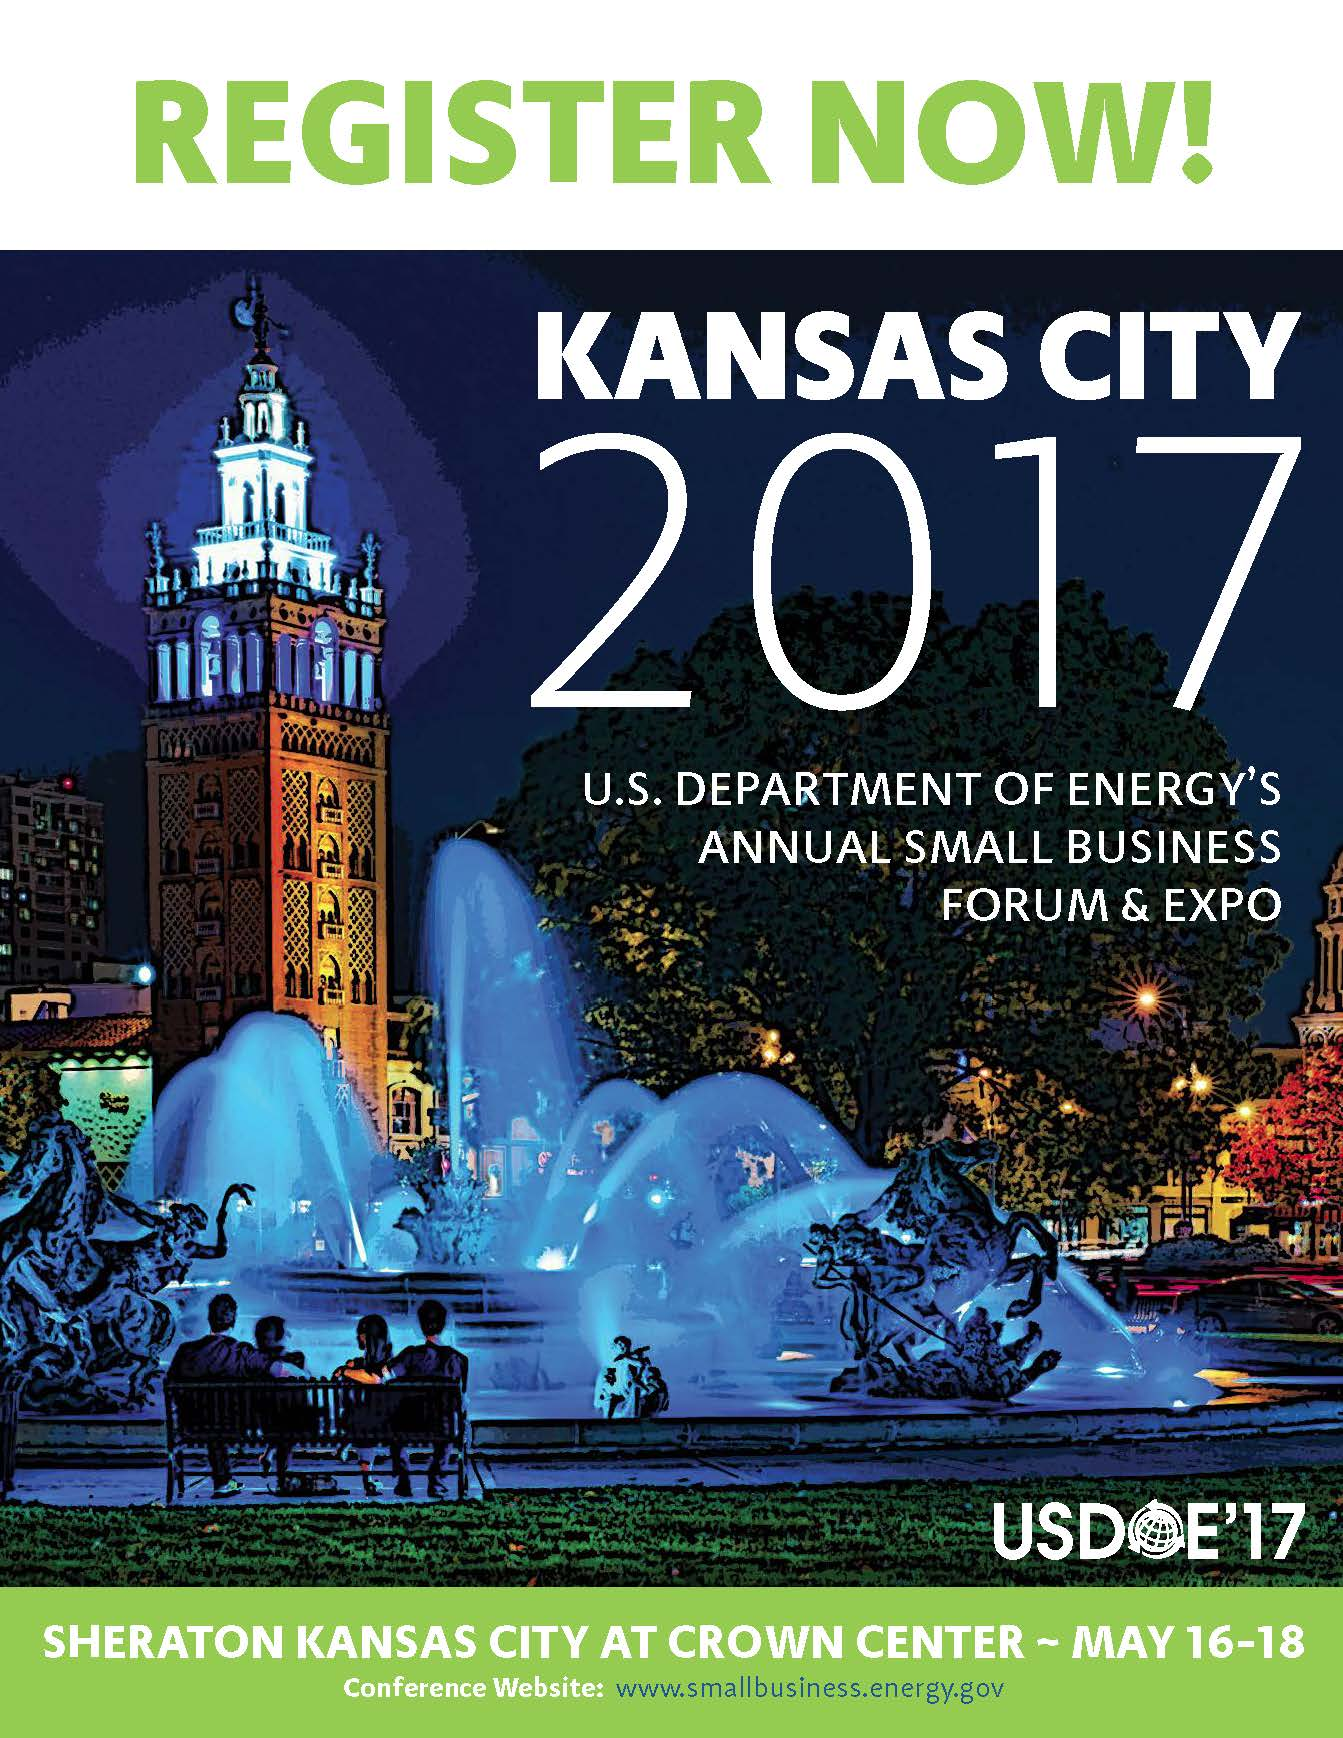 Kansas City 2017 Register Now Flyer